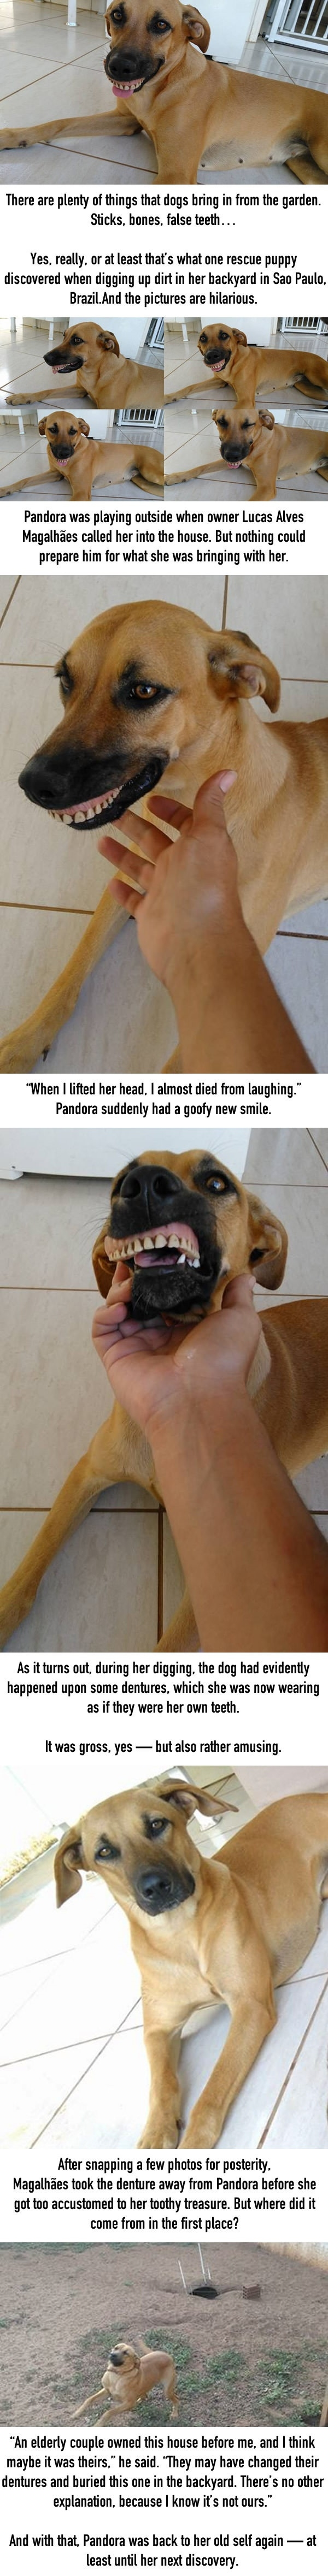 man is shocked when his dog walks in with a weird new smile